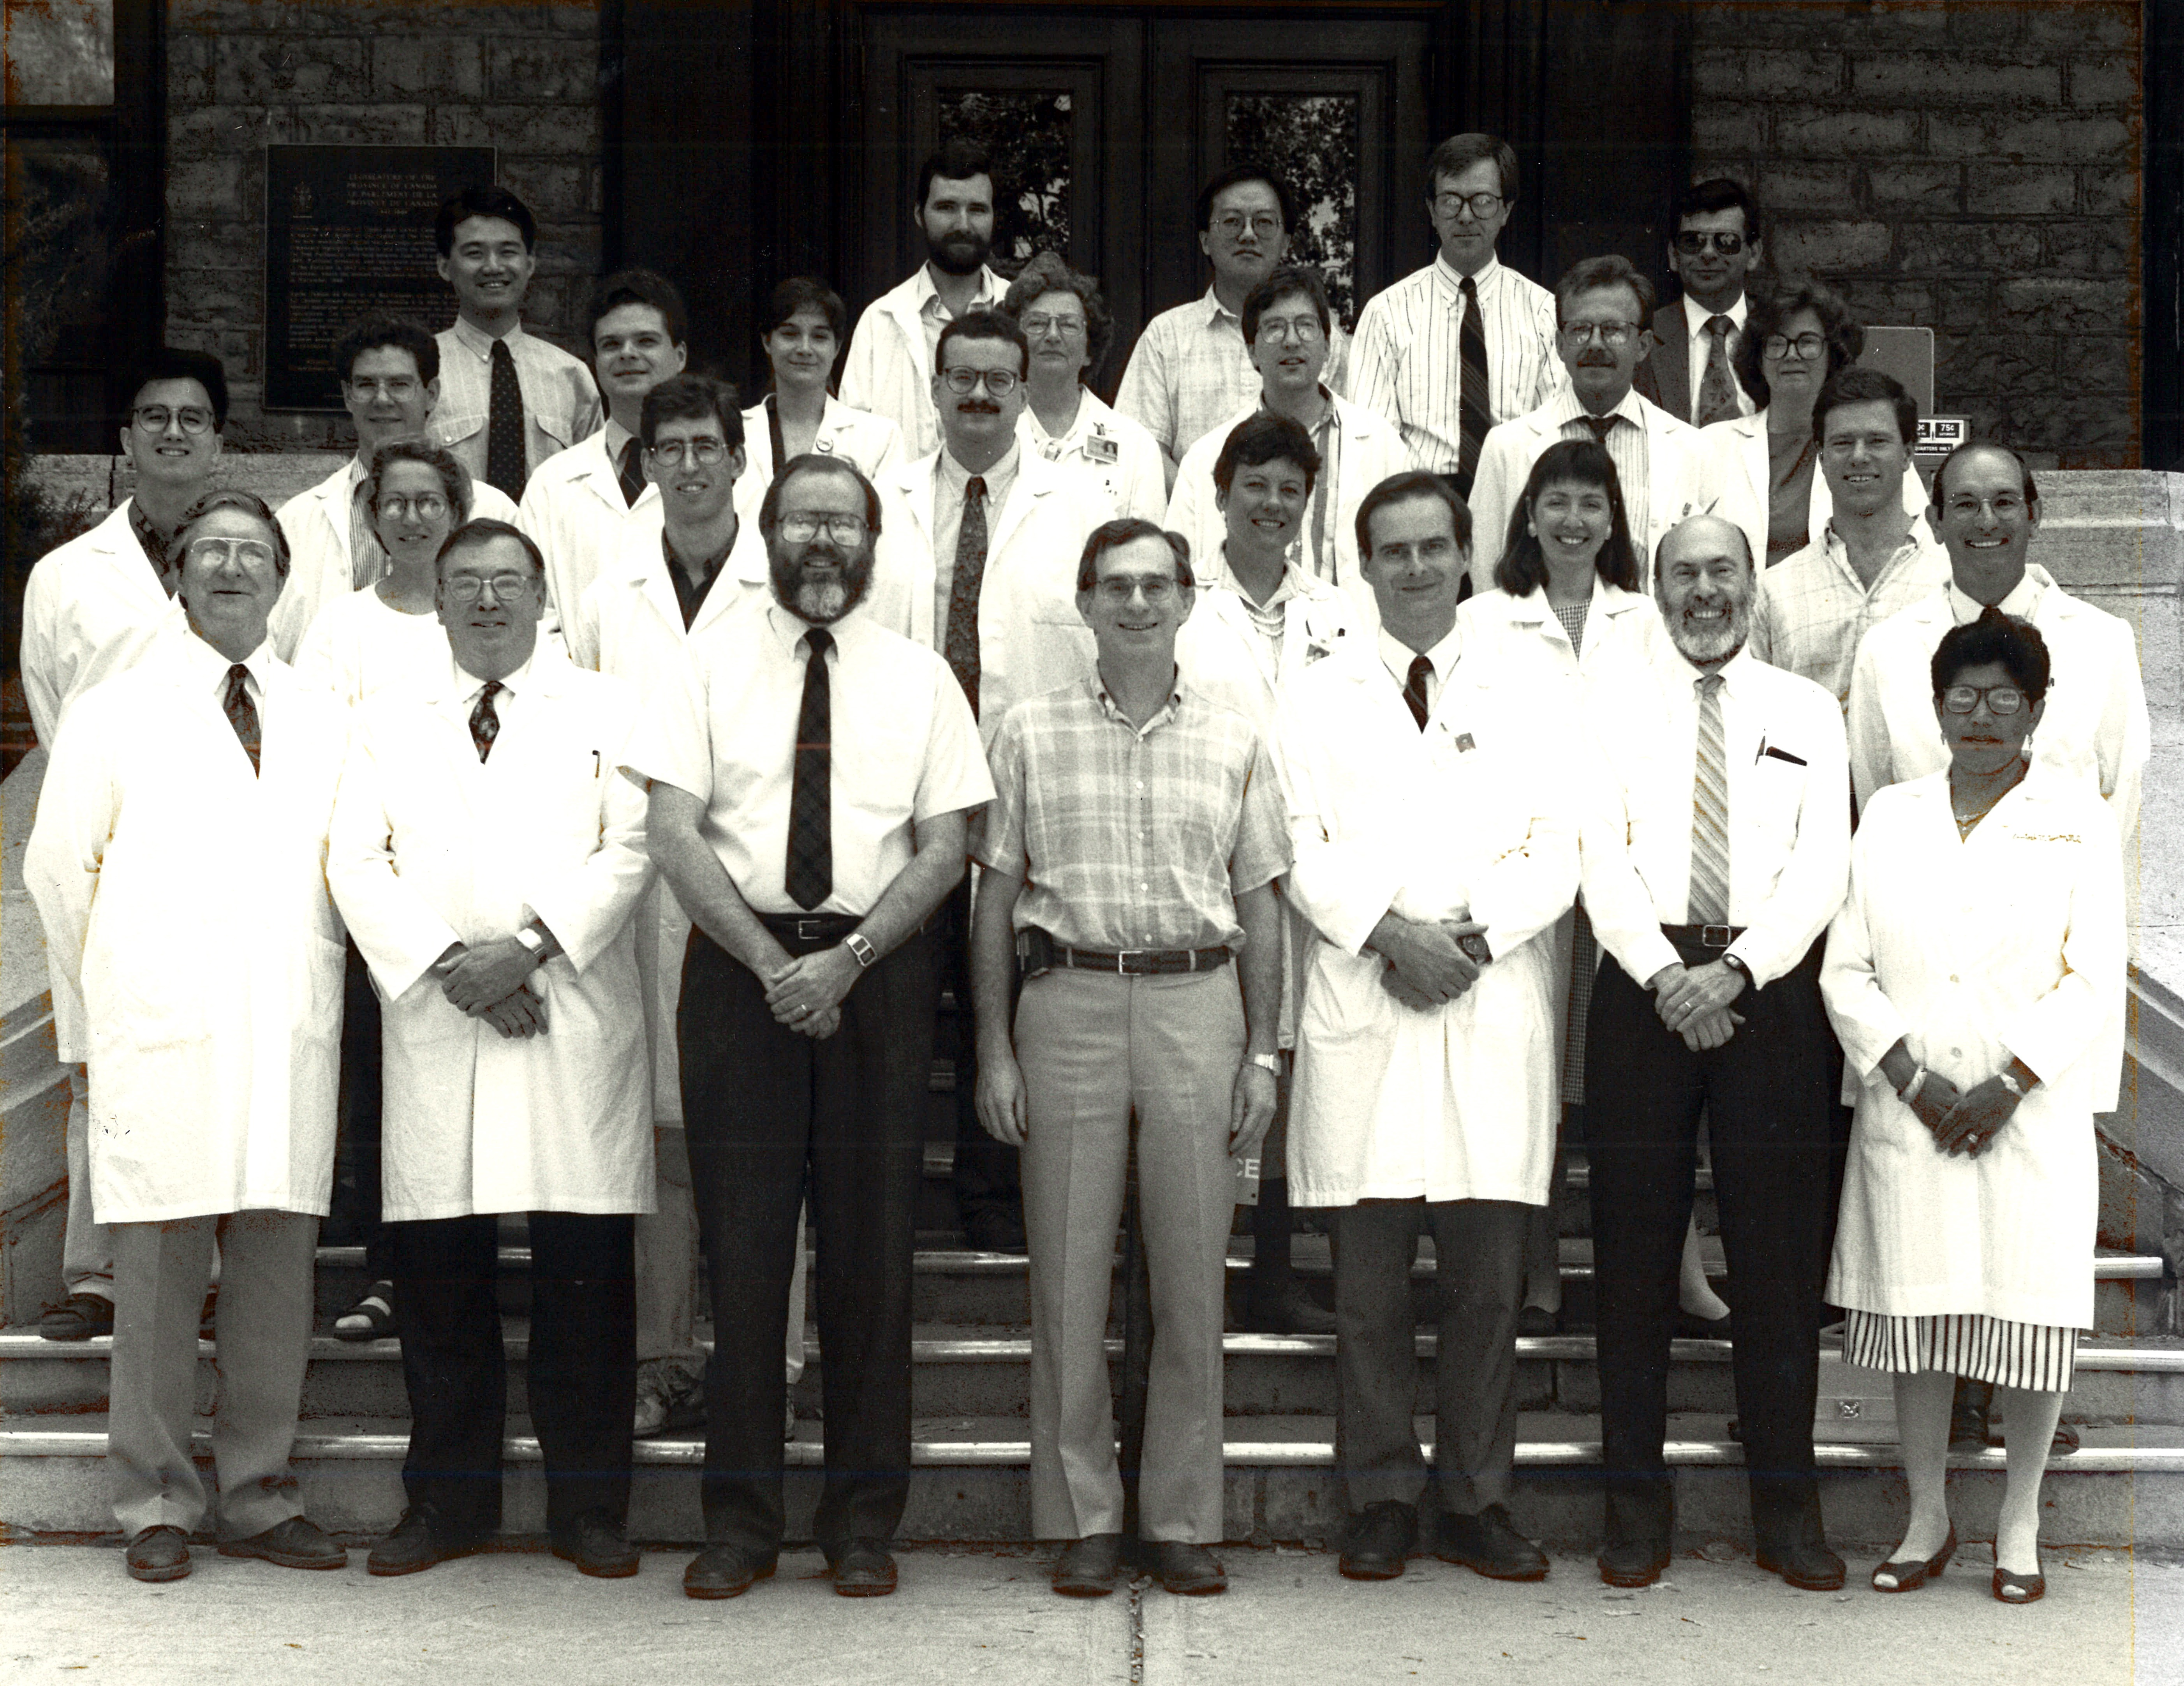 1992 Faculty Group Photo